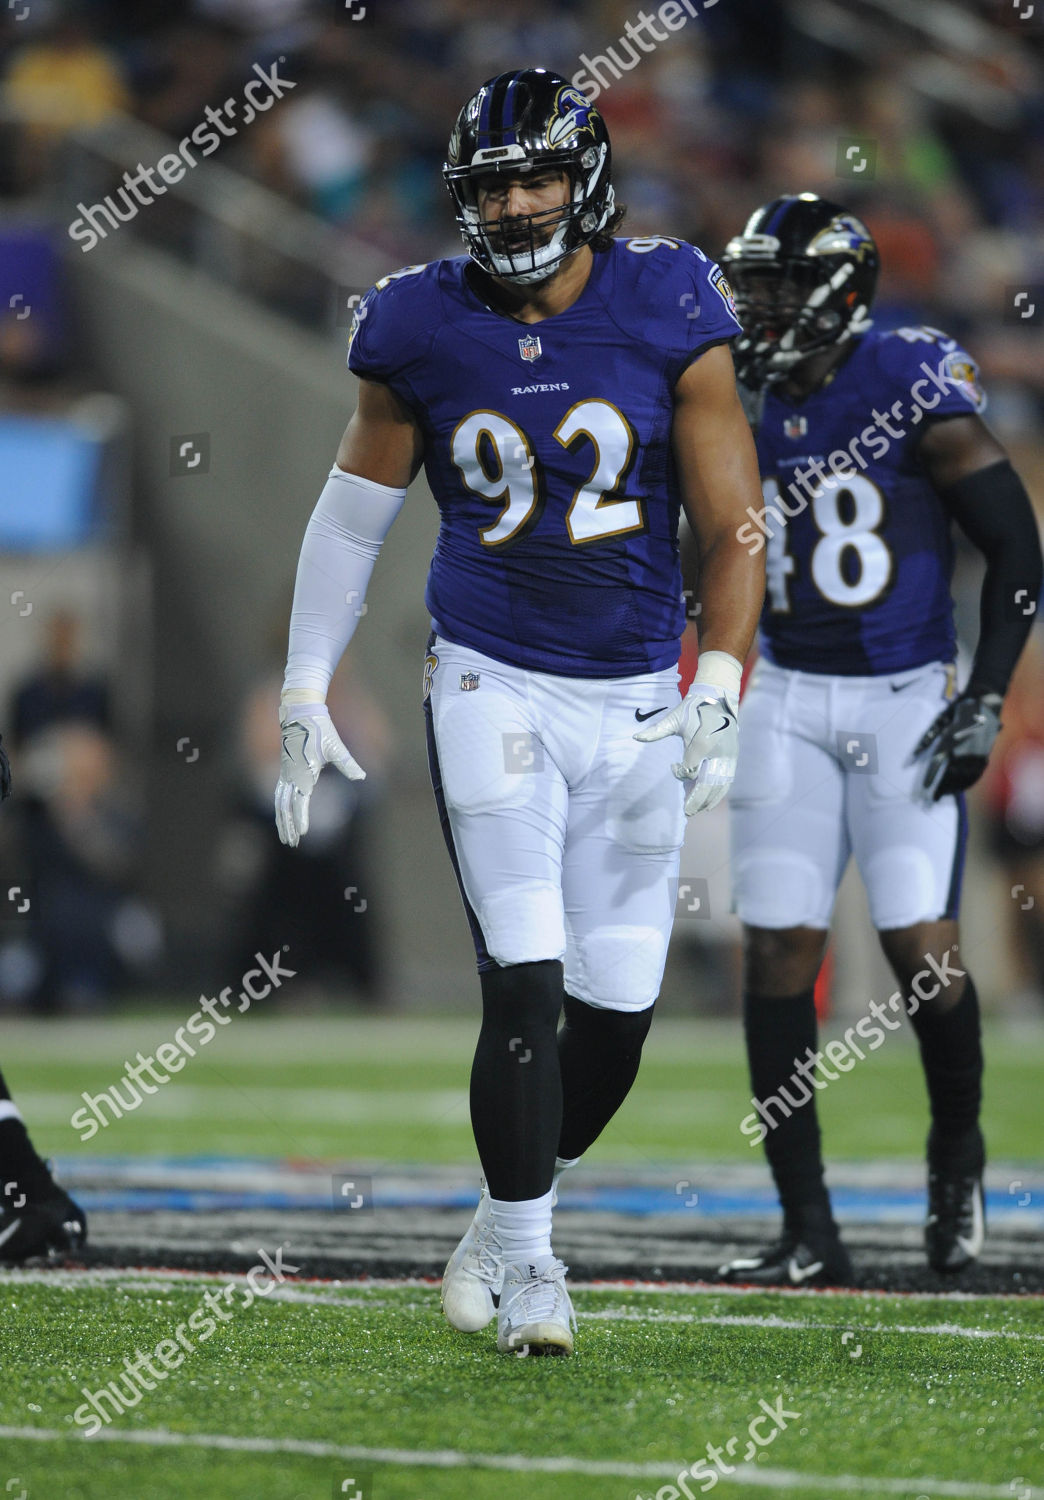 size 40 362ed ee56a nd Ravens 92 Bronson Kaufusi during Chicago Editorial Stock ...